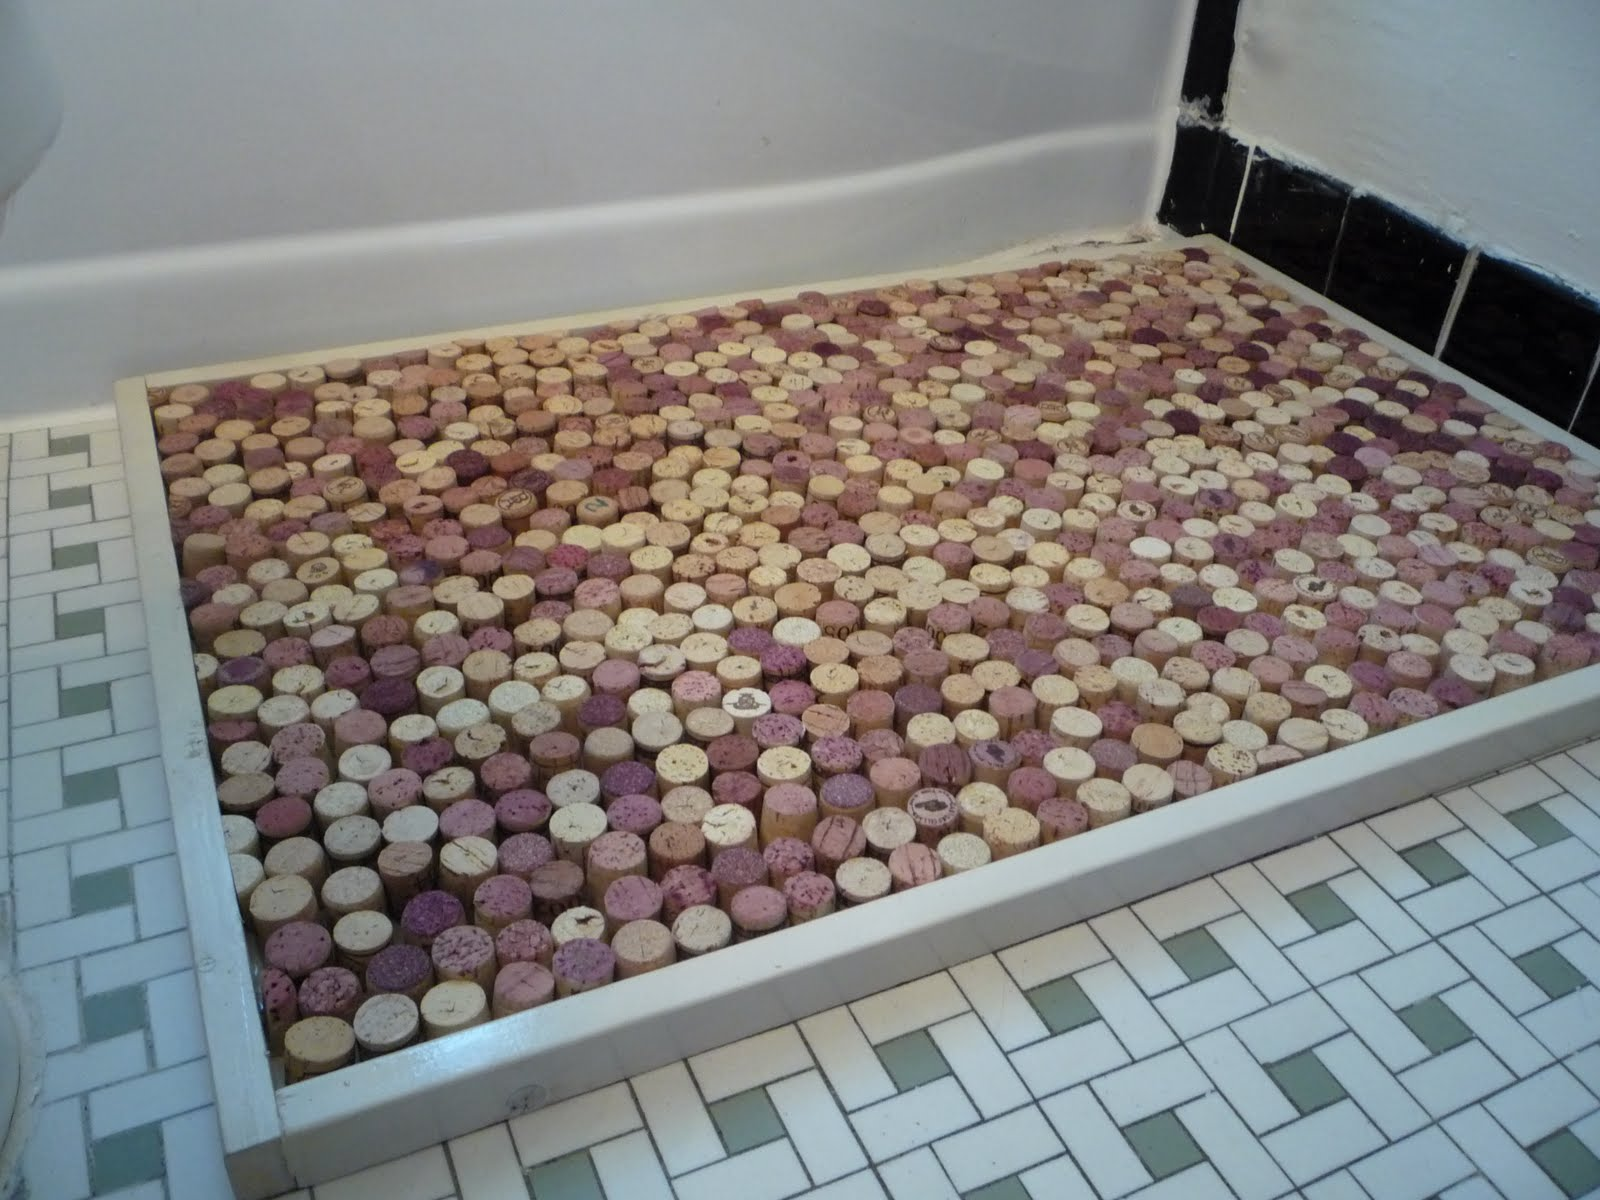 Very large bath rugs search - Dustin White Wine Cork Bath Mat